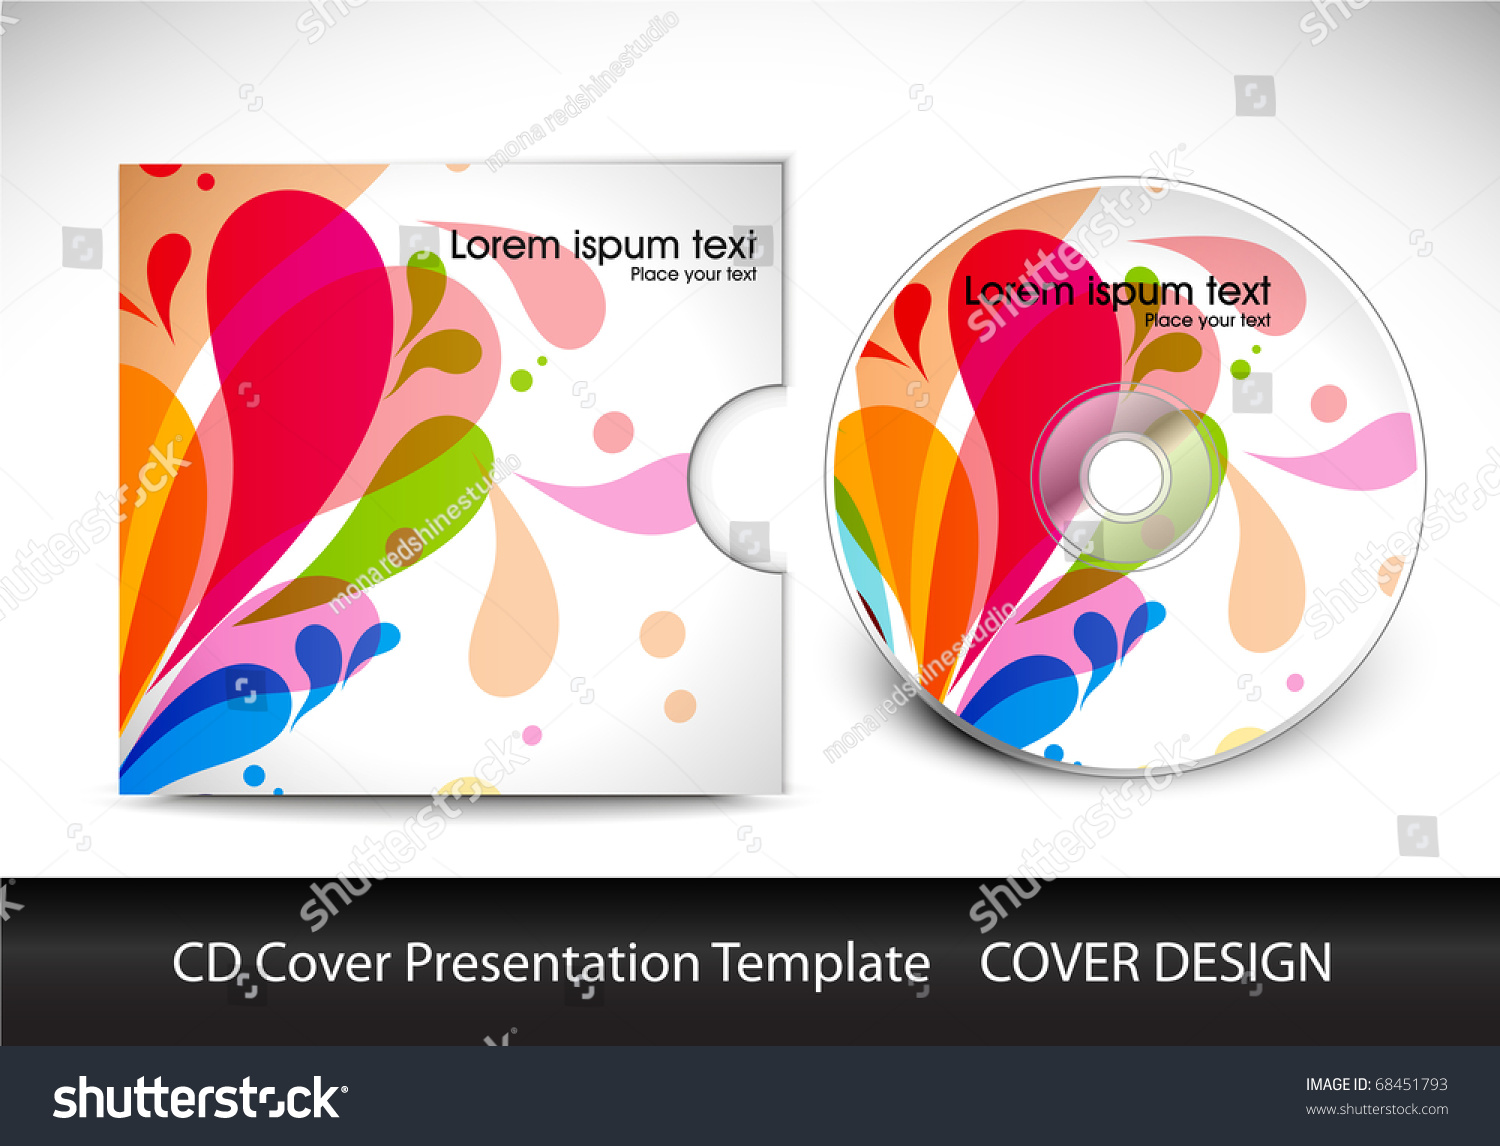 CD Cover Layout Design Template Preview Editable Stock Photo (Photo ...